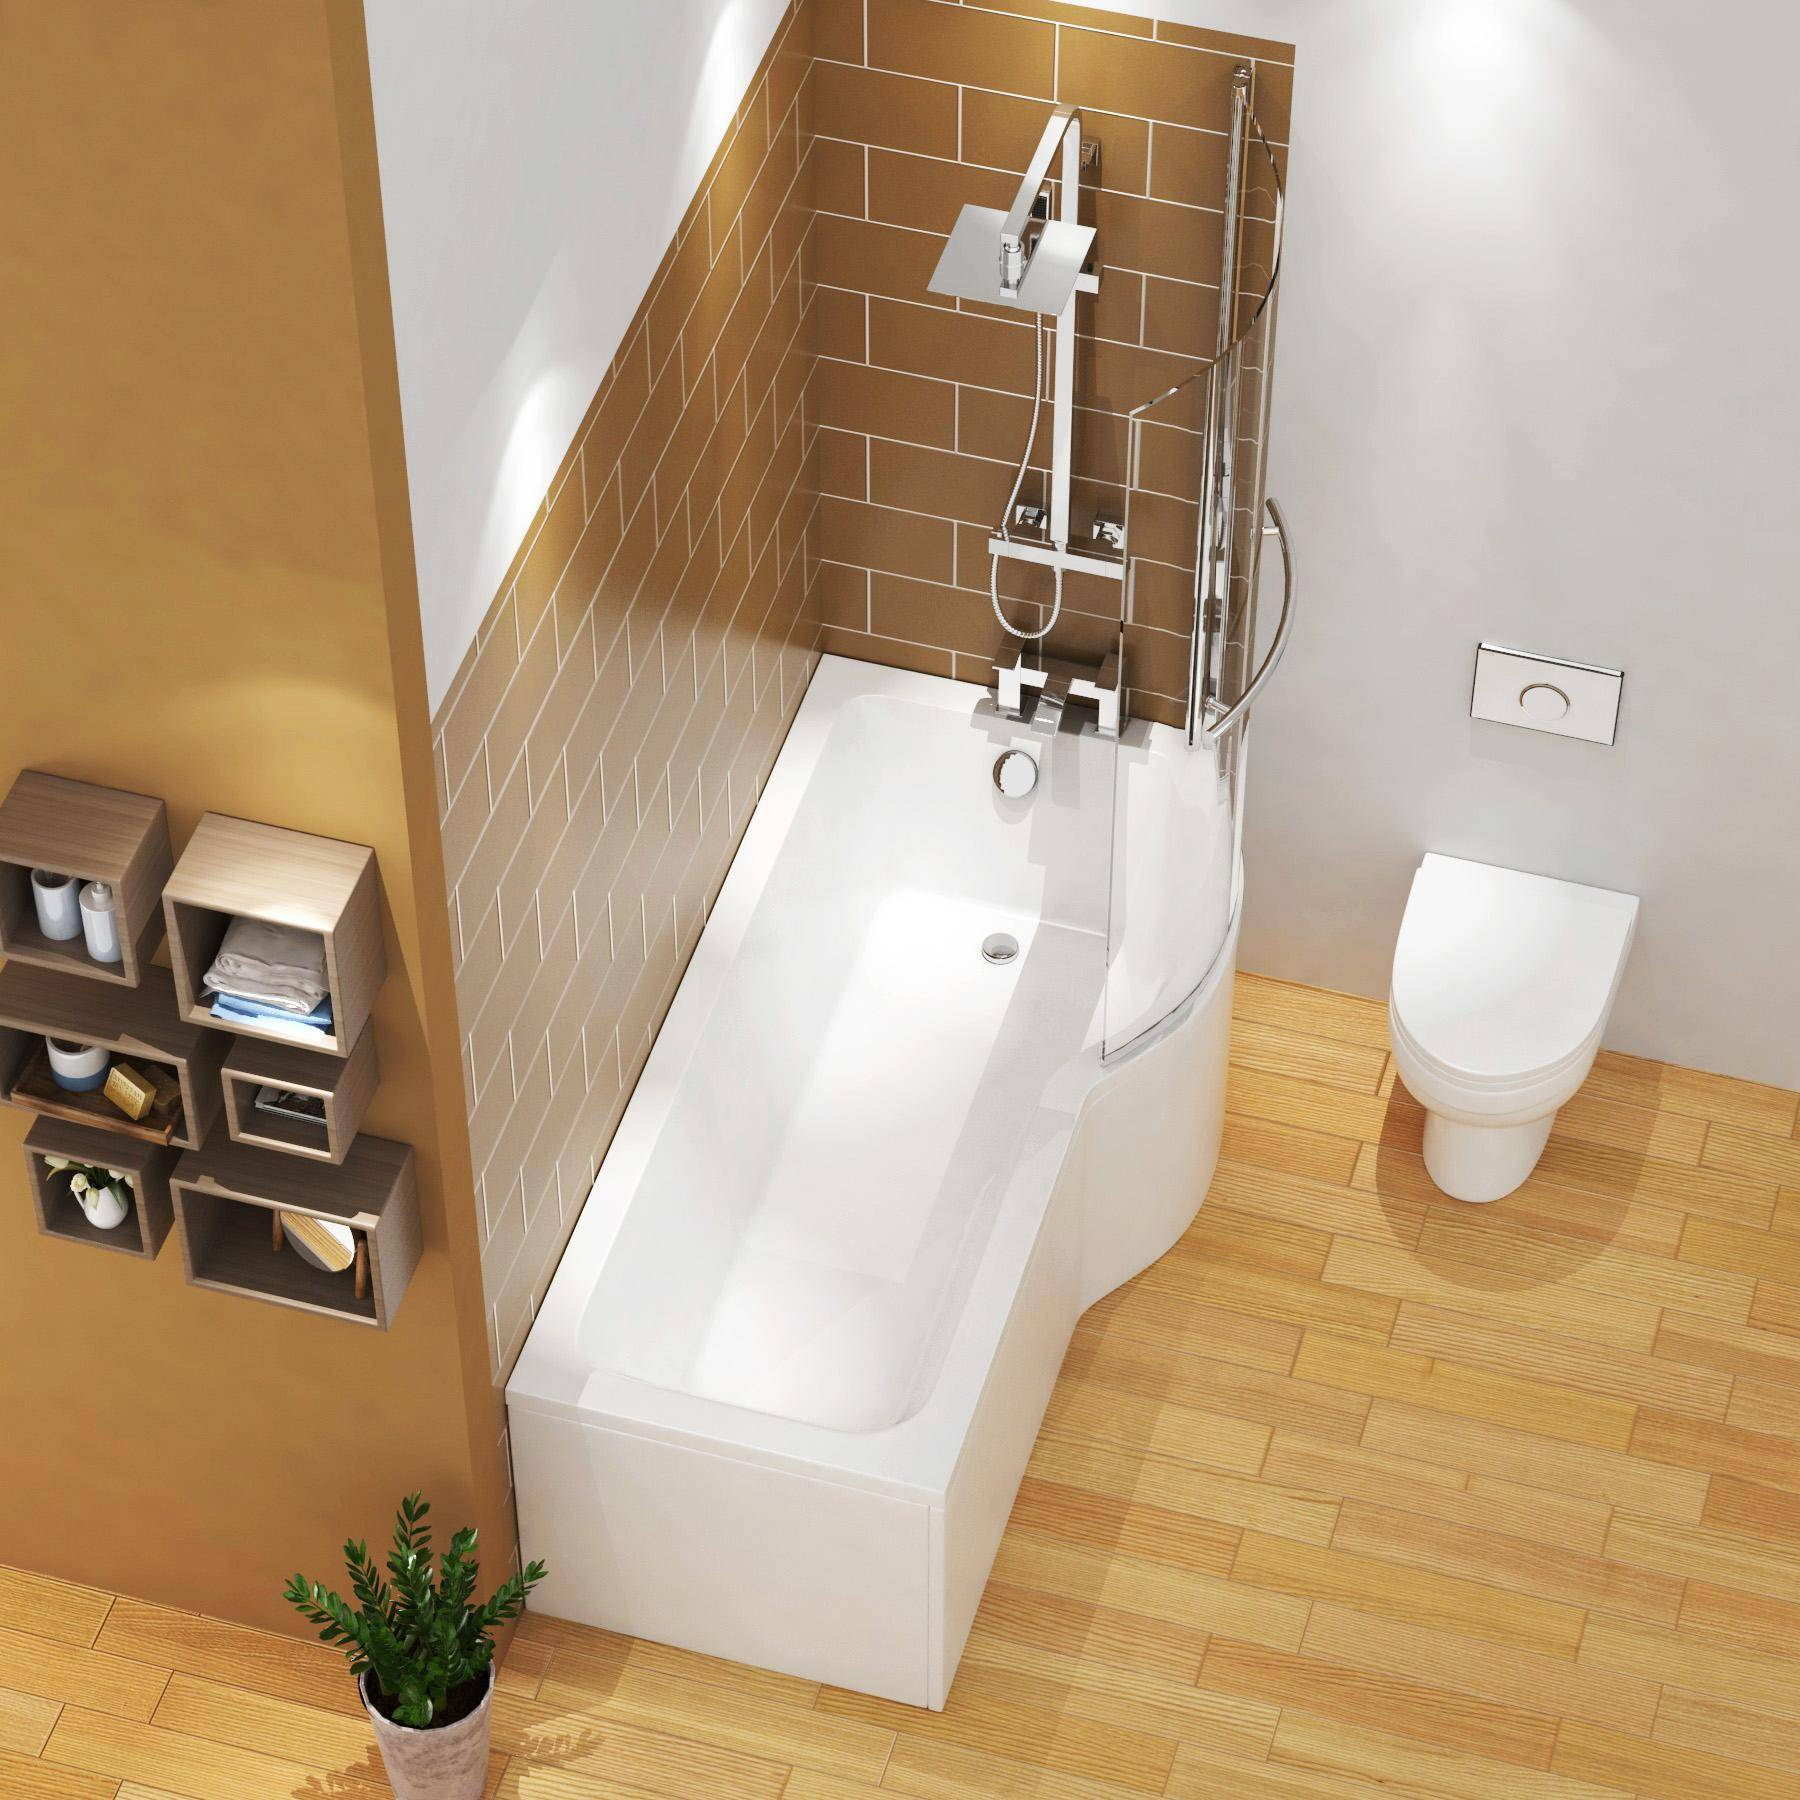 Royal Bathrooms Abacus 1600 x 850mm Right Hand Curved P-Shaped Shower Bath tub with Front, End Panel & Shower Screen with Towel Rail